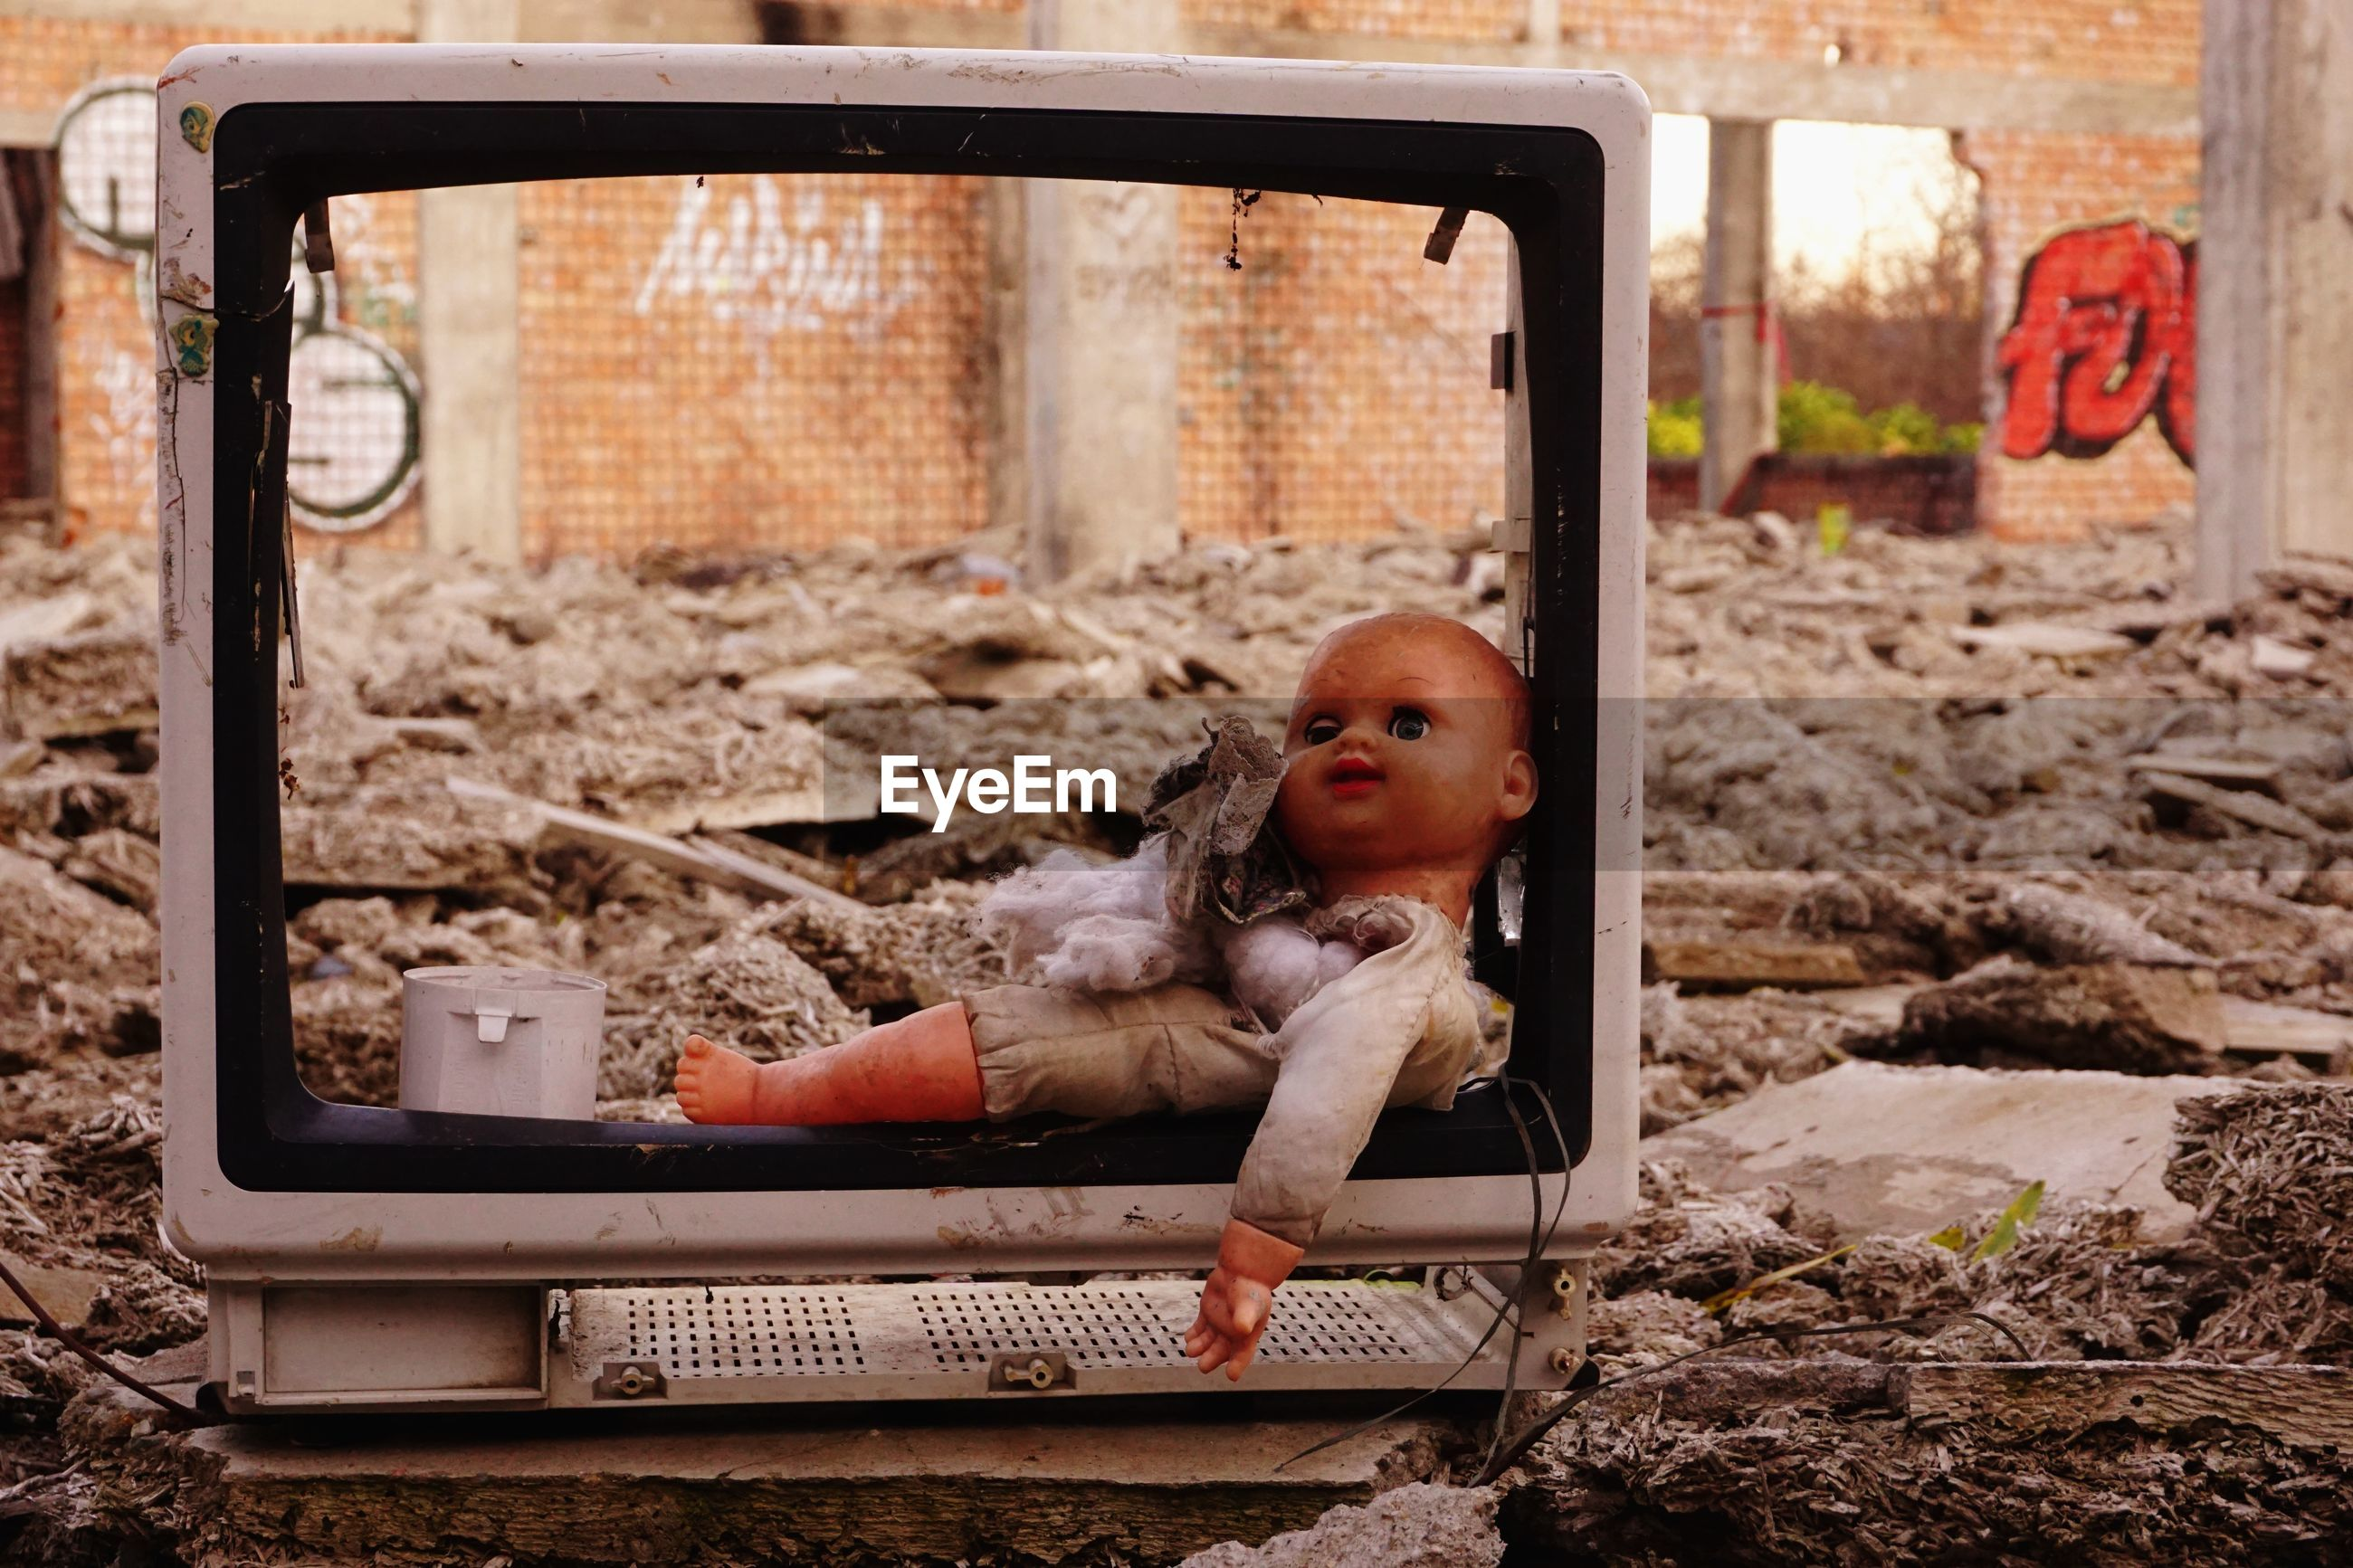 Close-up of abandoned doll and television set outdoors